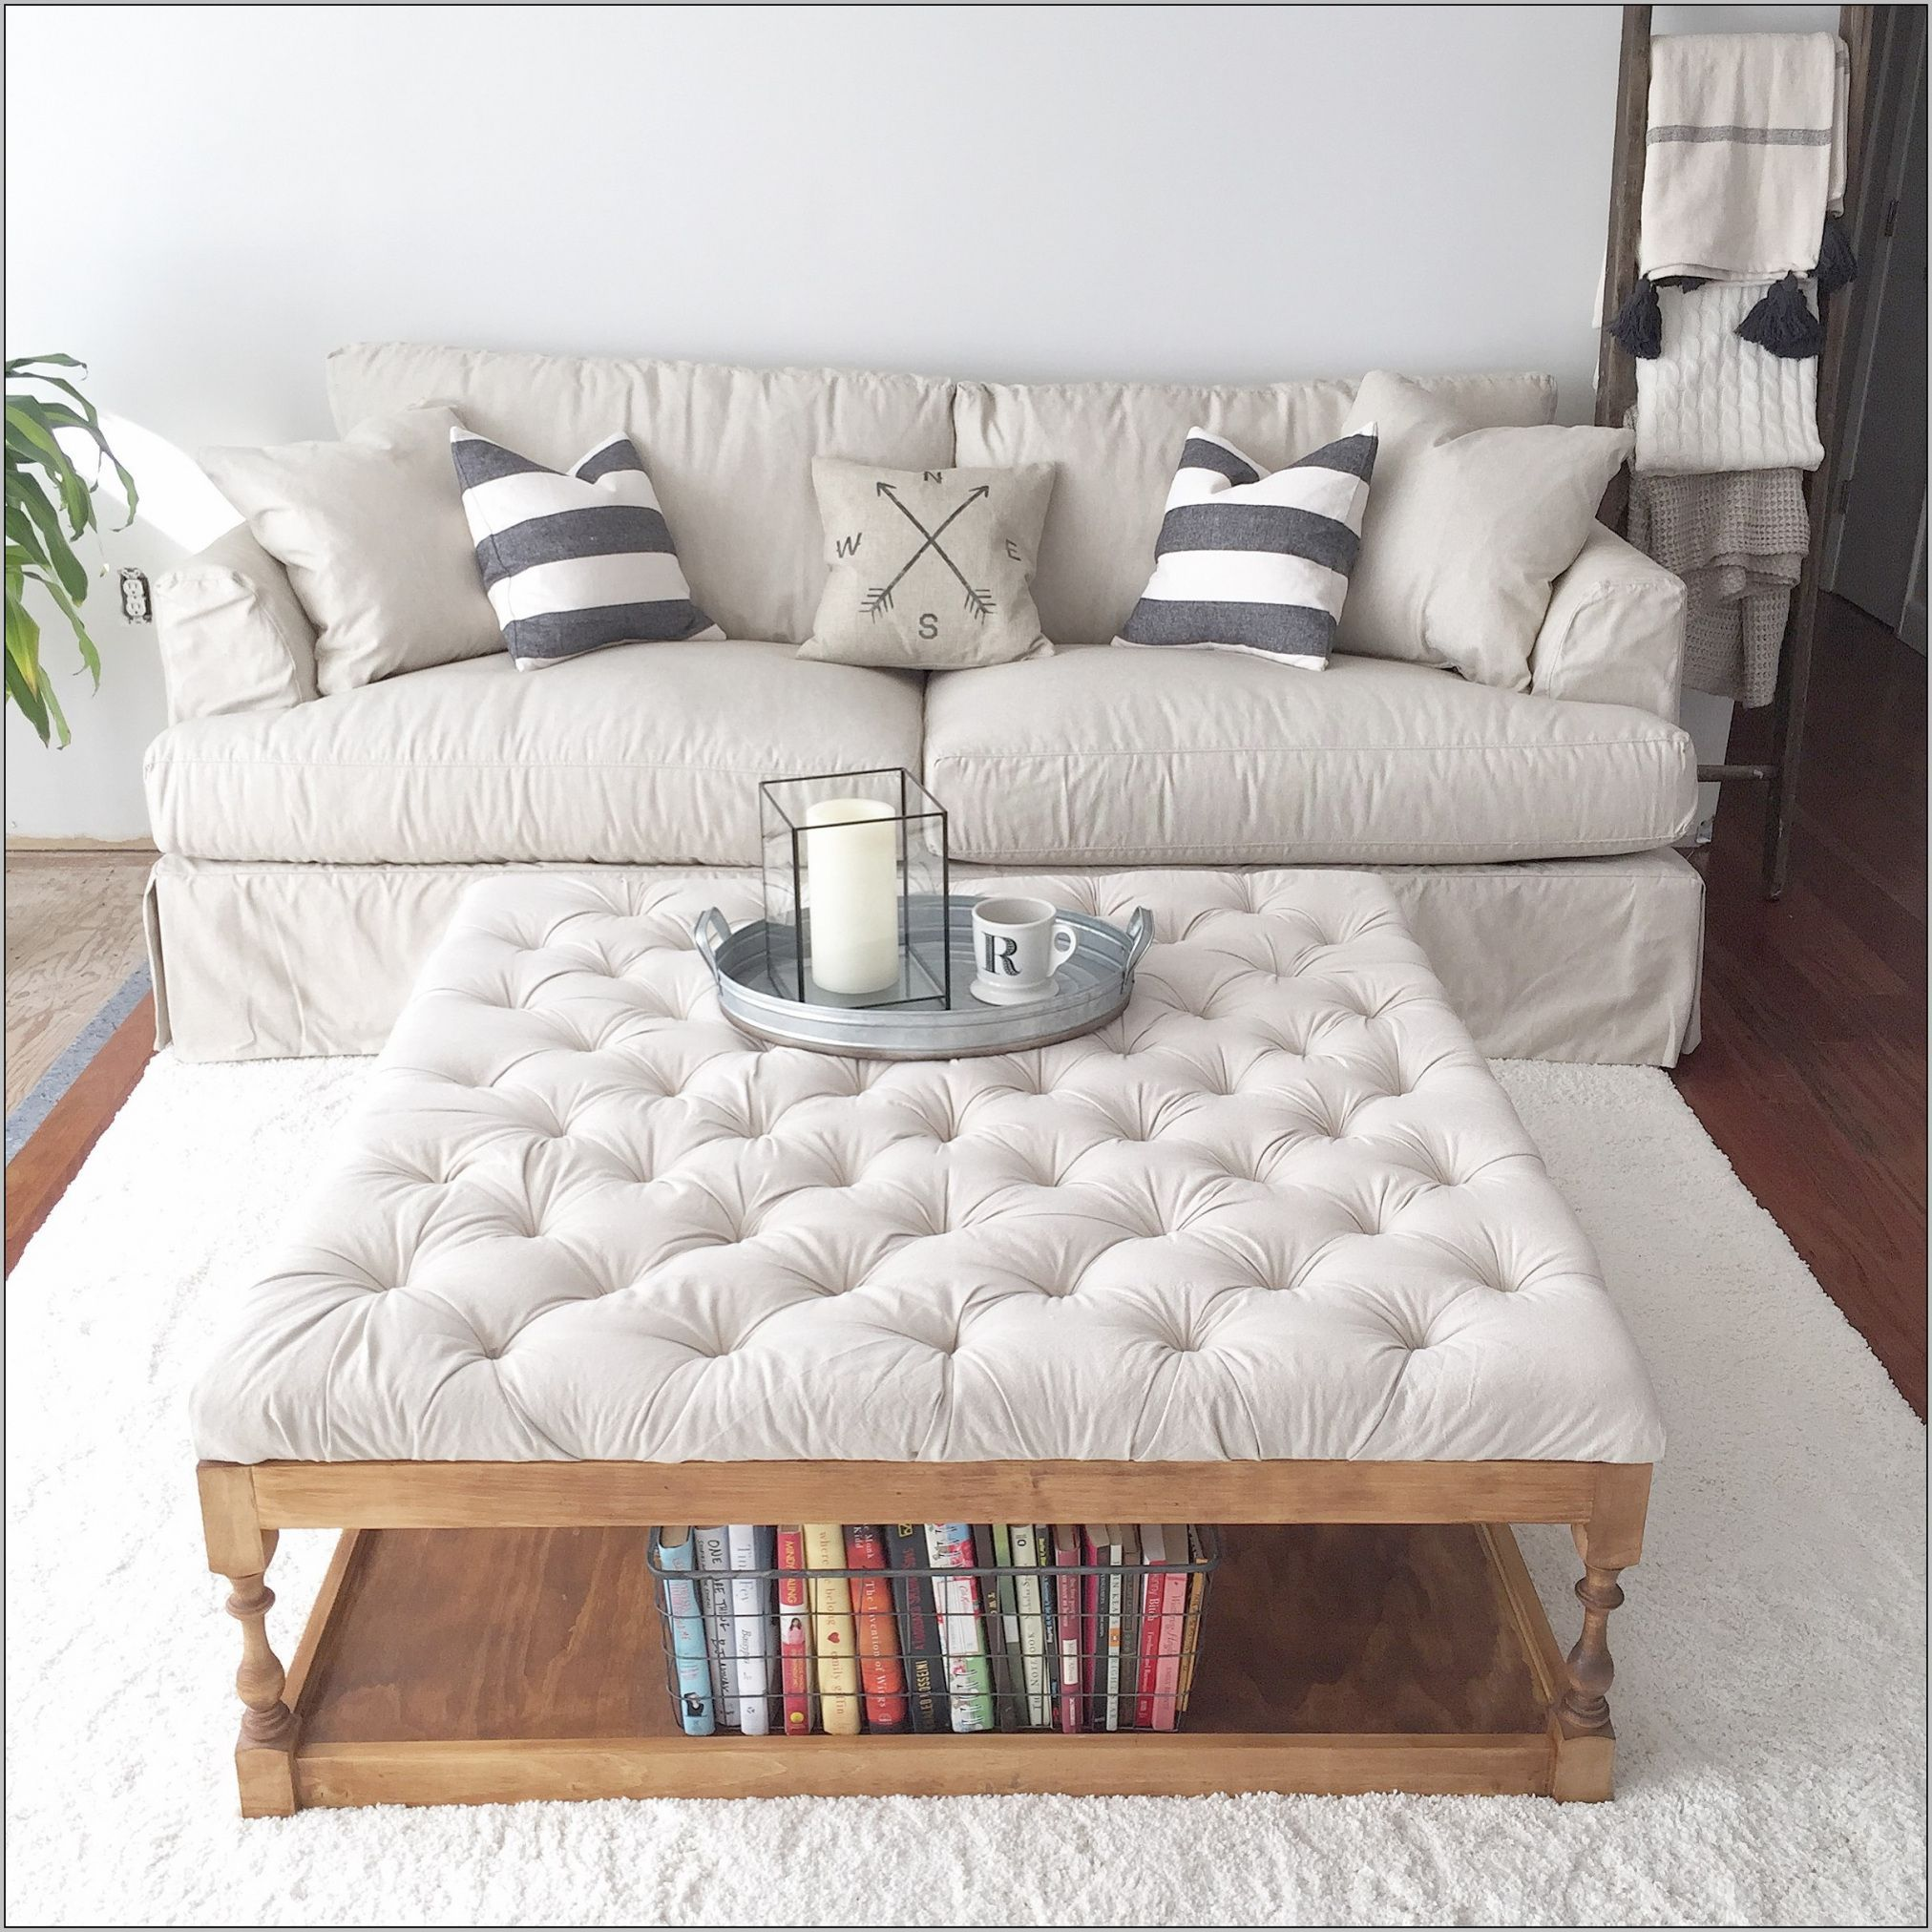 20 Tufted Ottoman Coffee Table Diy - Large Home Office ...